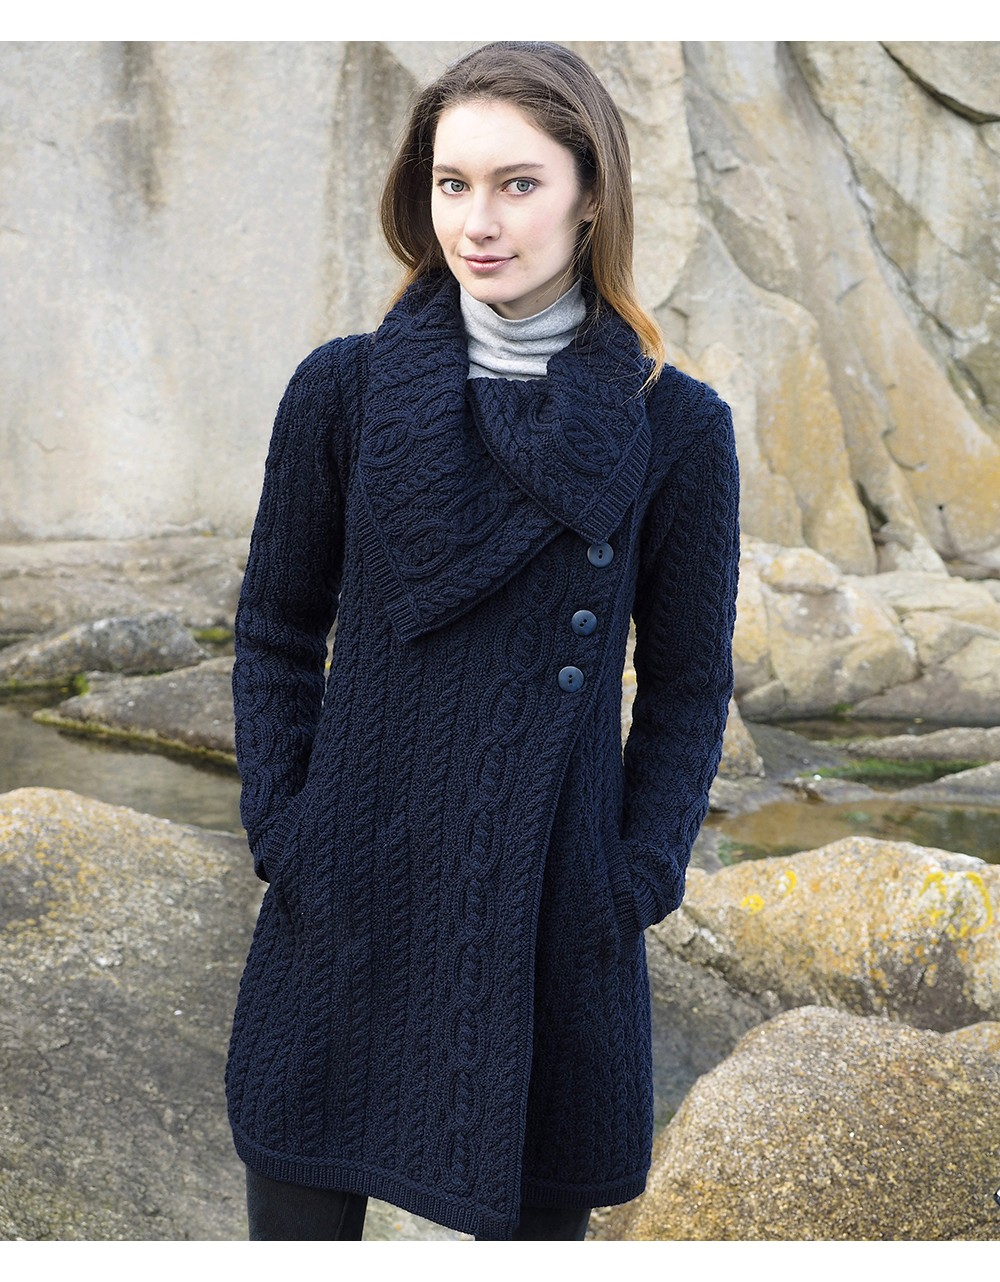 Aran Style Large Collar Coat|Aran Knitwear Specials|Irish Handcrafts -1